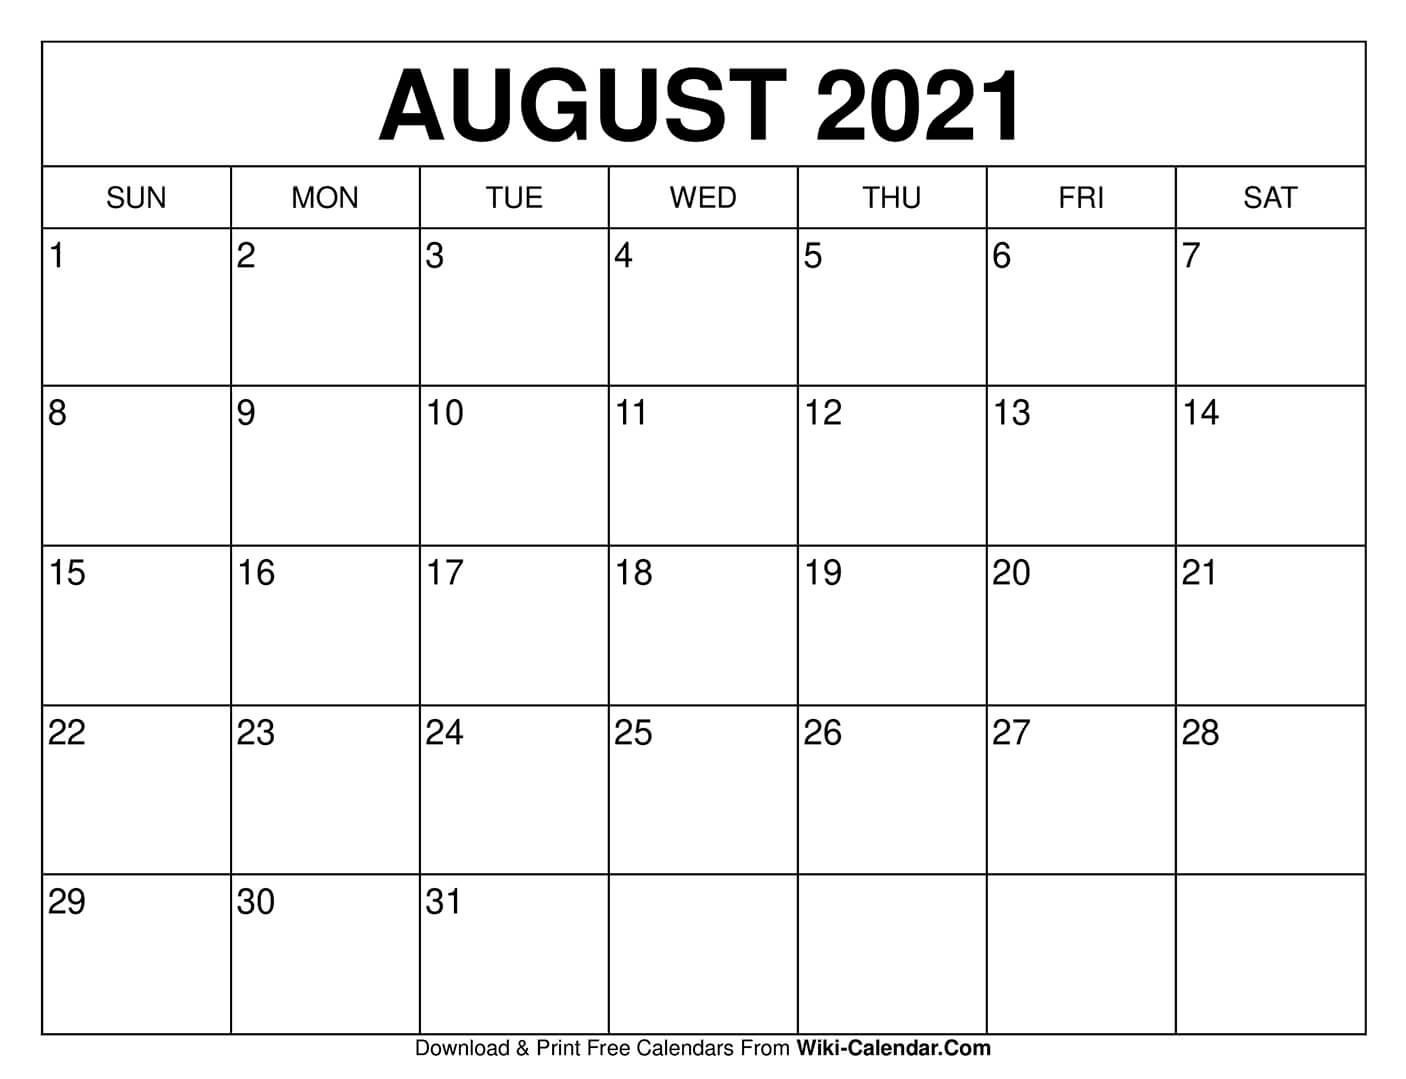 Pick 2021 August Calendar Print Out